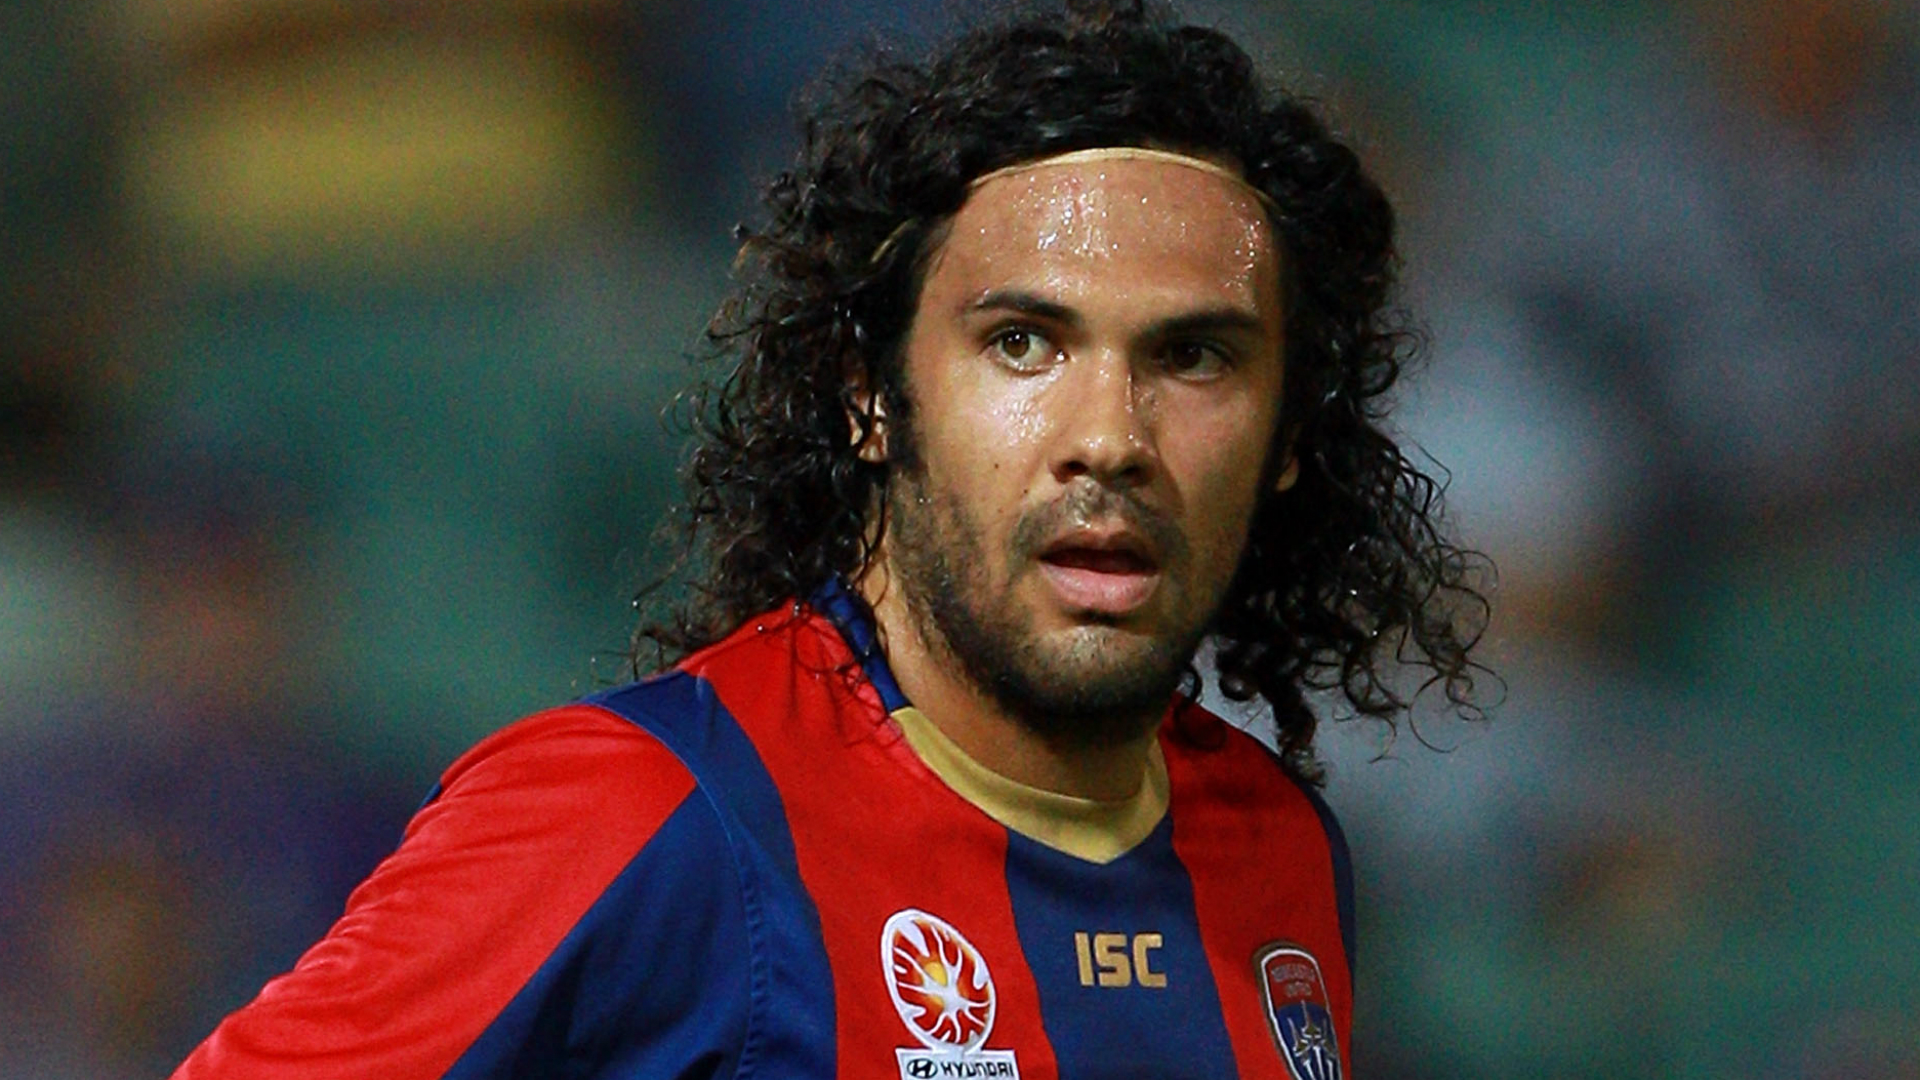 Former Western Sydney Wanderers captain Nikolai Topor-Stanley signs with Newcastle Jets